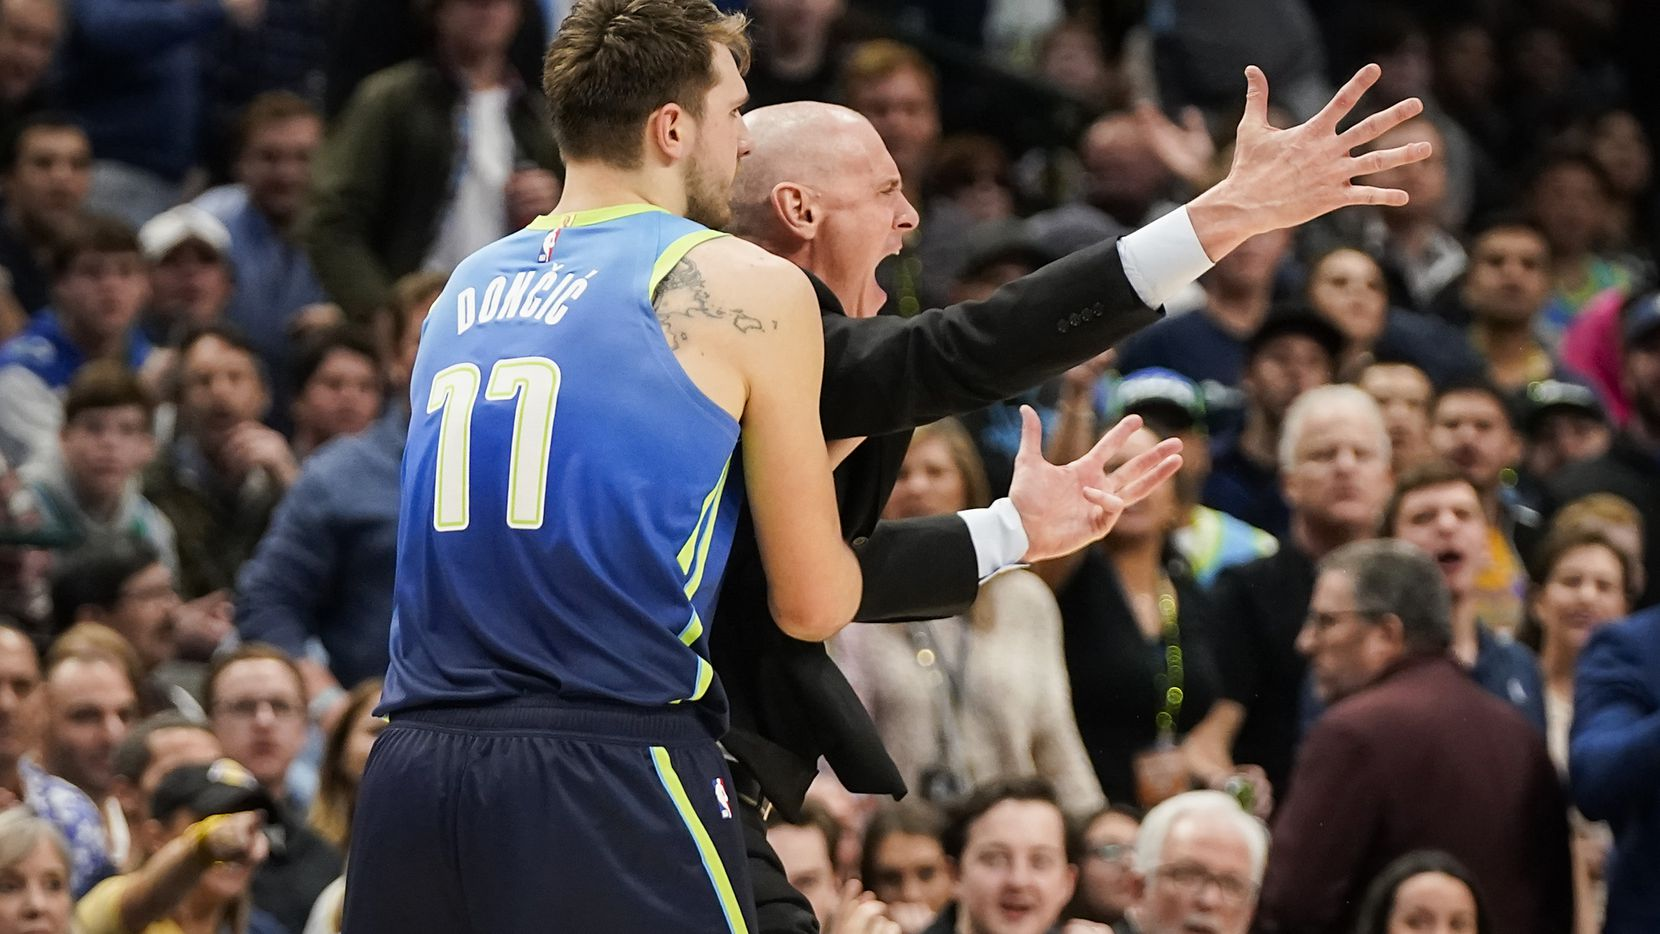 Dallas Mavericks head coach Rick Carlisle is restrained by guard Luka Doncic after being ejected after picking up a technical foul during the second half of an NBA basketball game against the Los Angeles Lakers at American Airlines Center on Friday, Jan. 10, 2020, in Dallas.